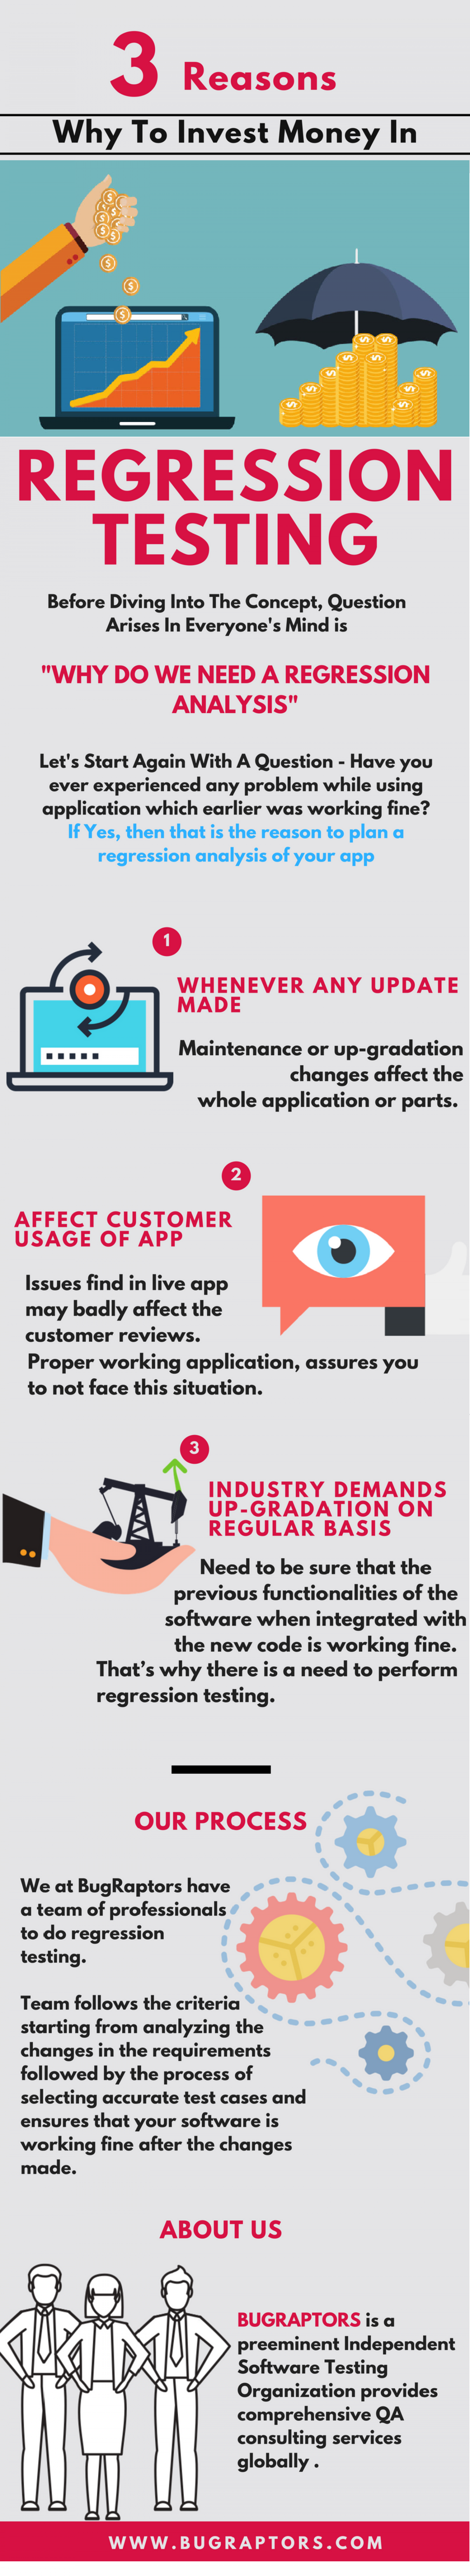 Why To Invest Money and Time in Regression Testing? [Infographic] Infographic